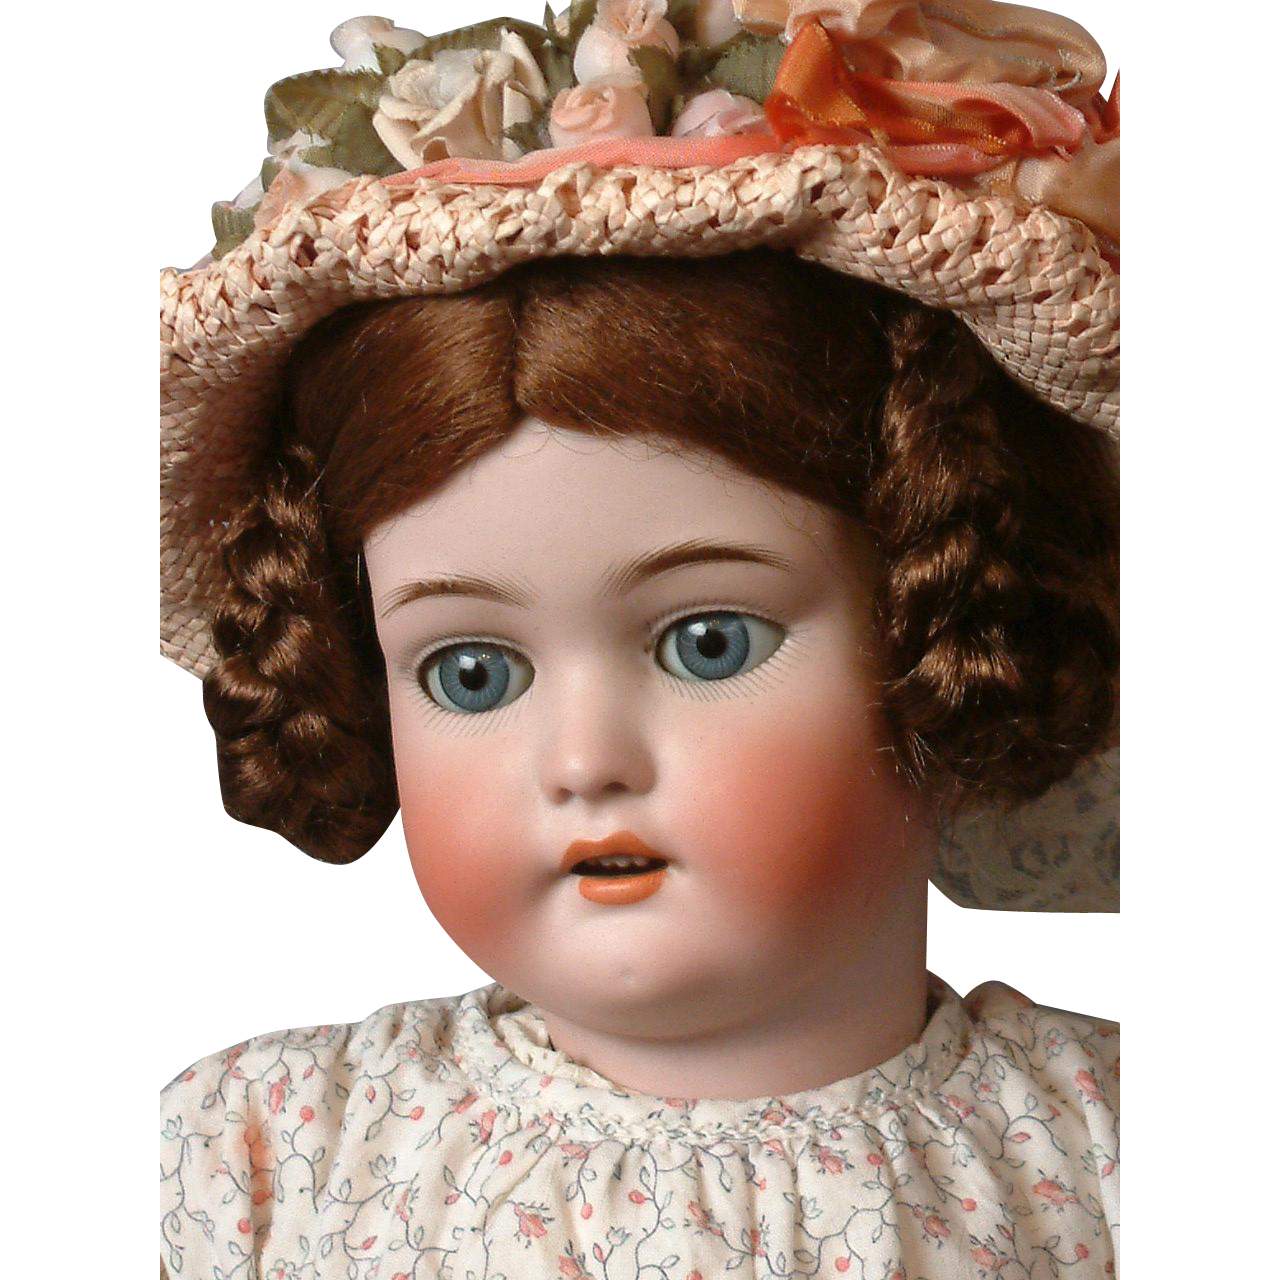 Exquisite Simon & Halbig 1079 Antique Bisque Doll in Adorable Costume 22""